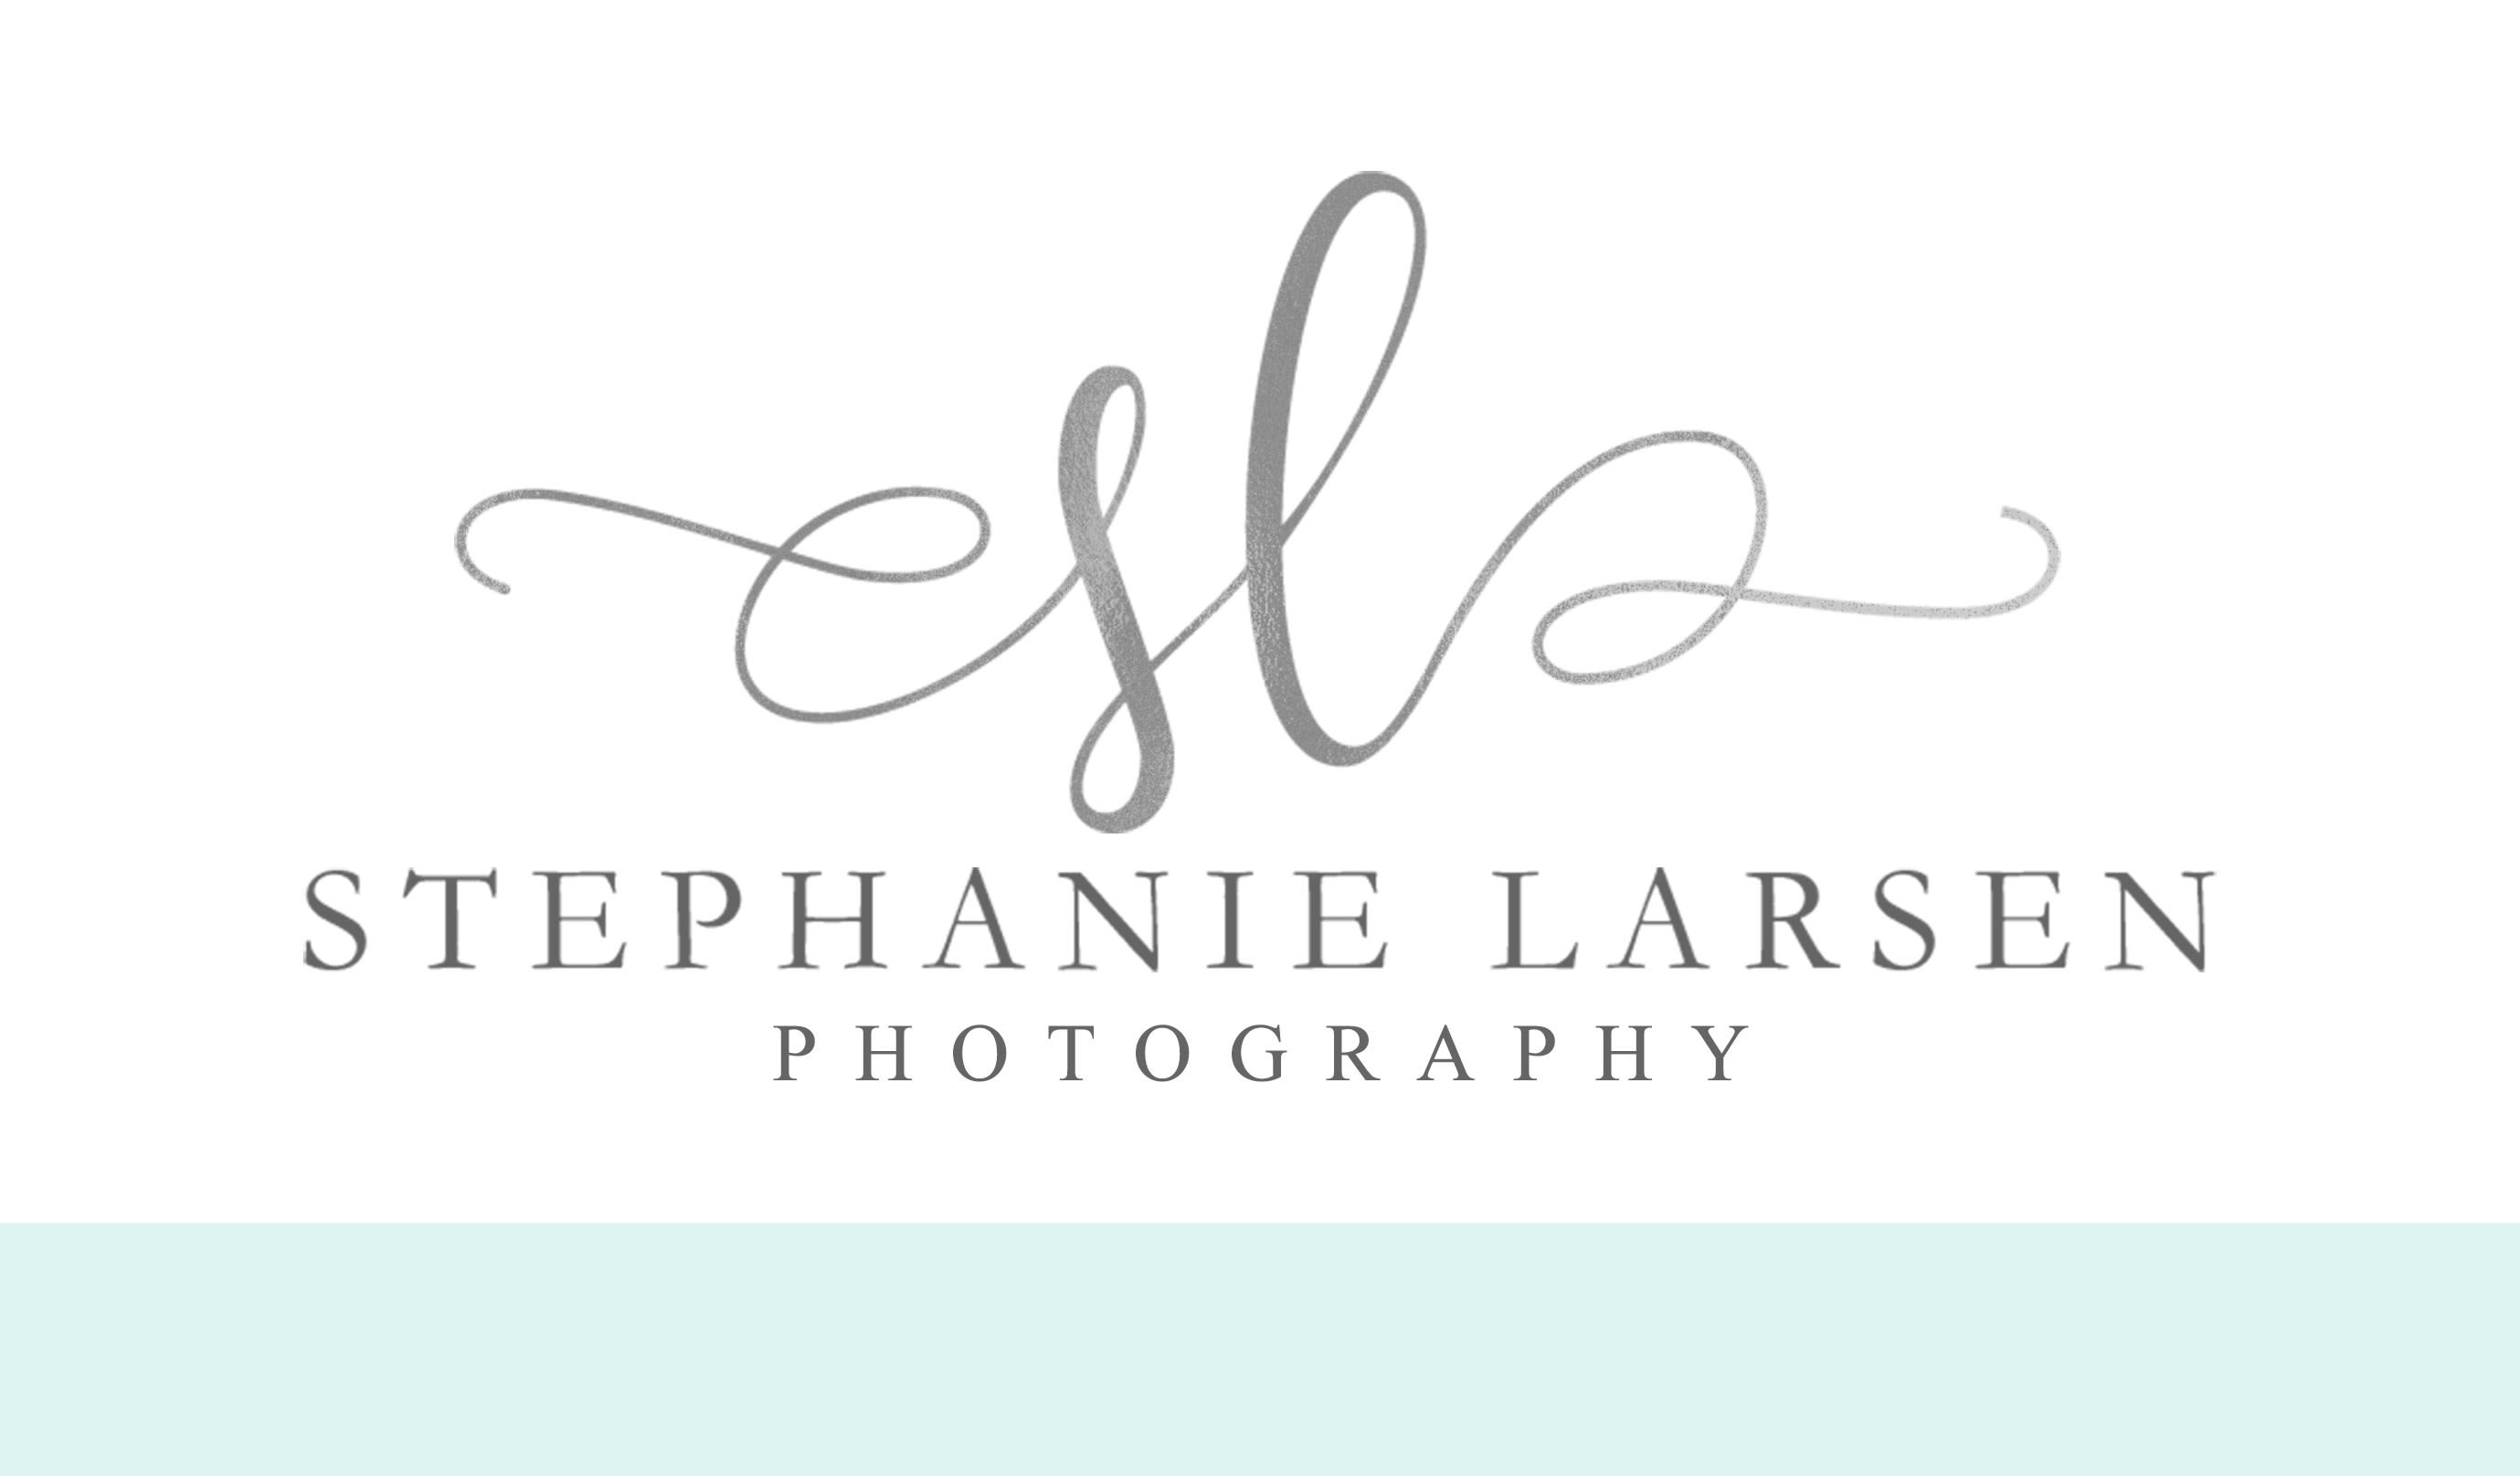 Stephanie Larsen Photography